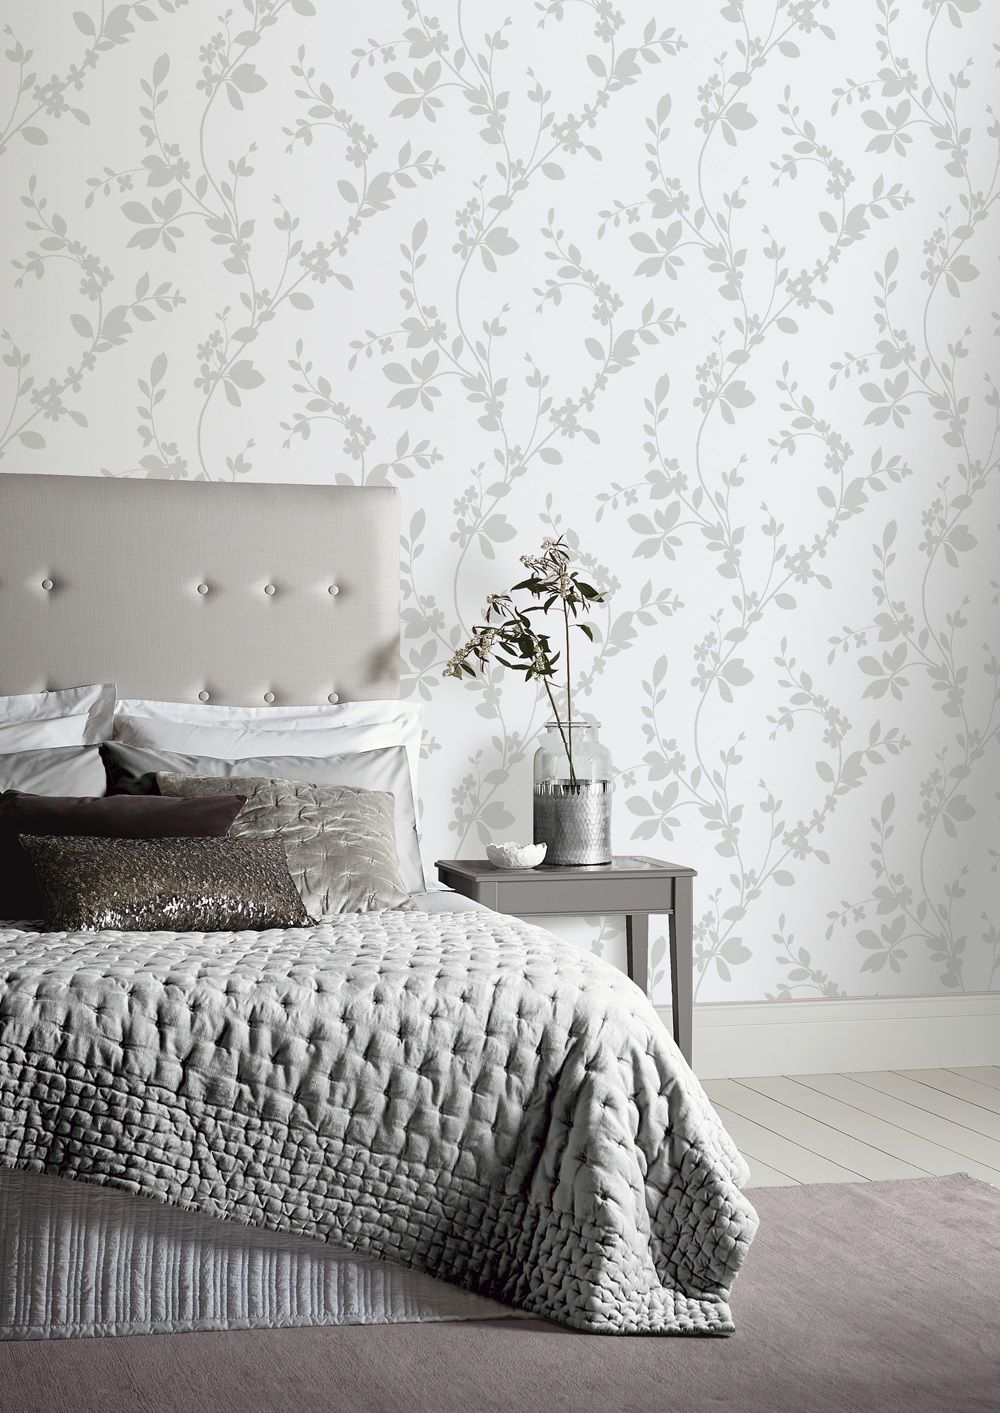 11 Bedroom Wallpaper Ideas To Help Banish Plain Walls